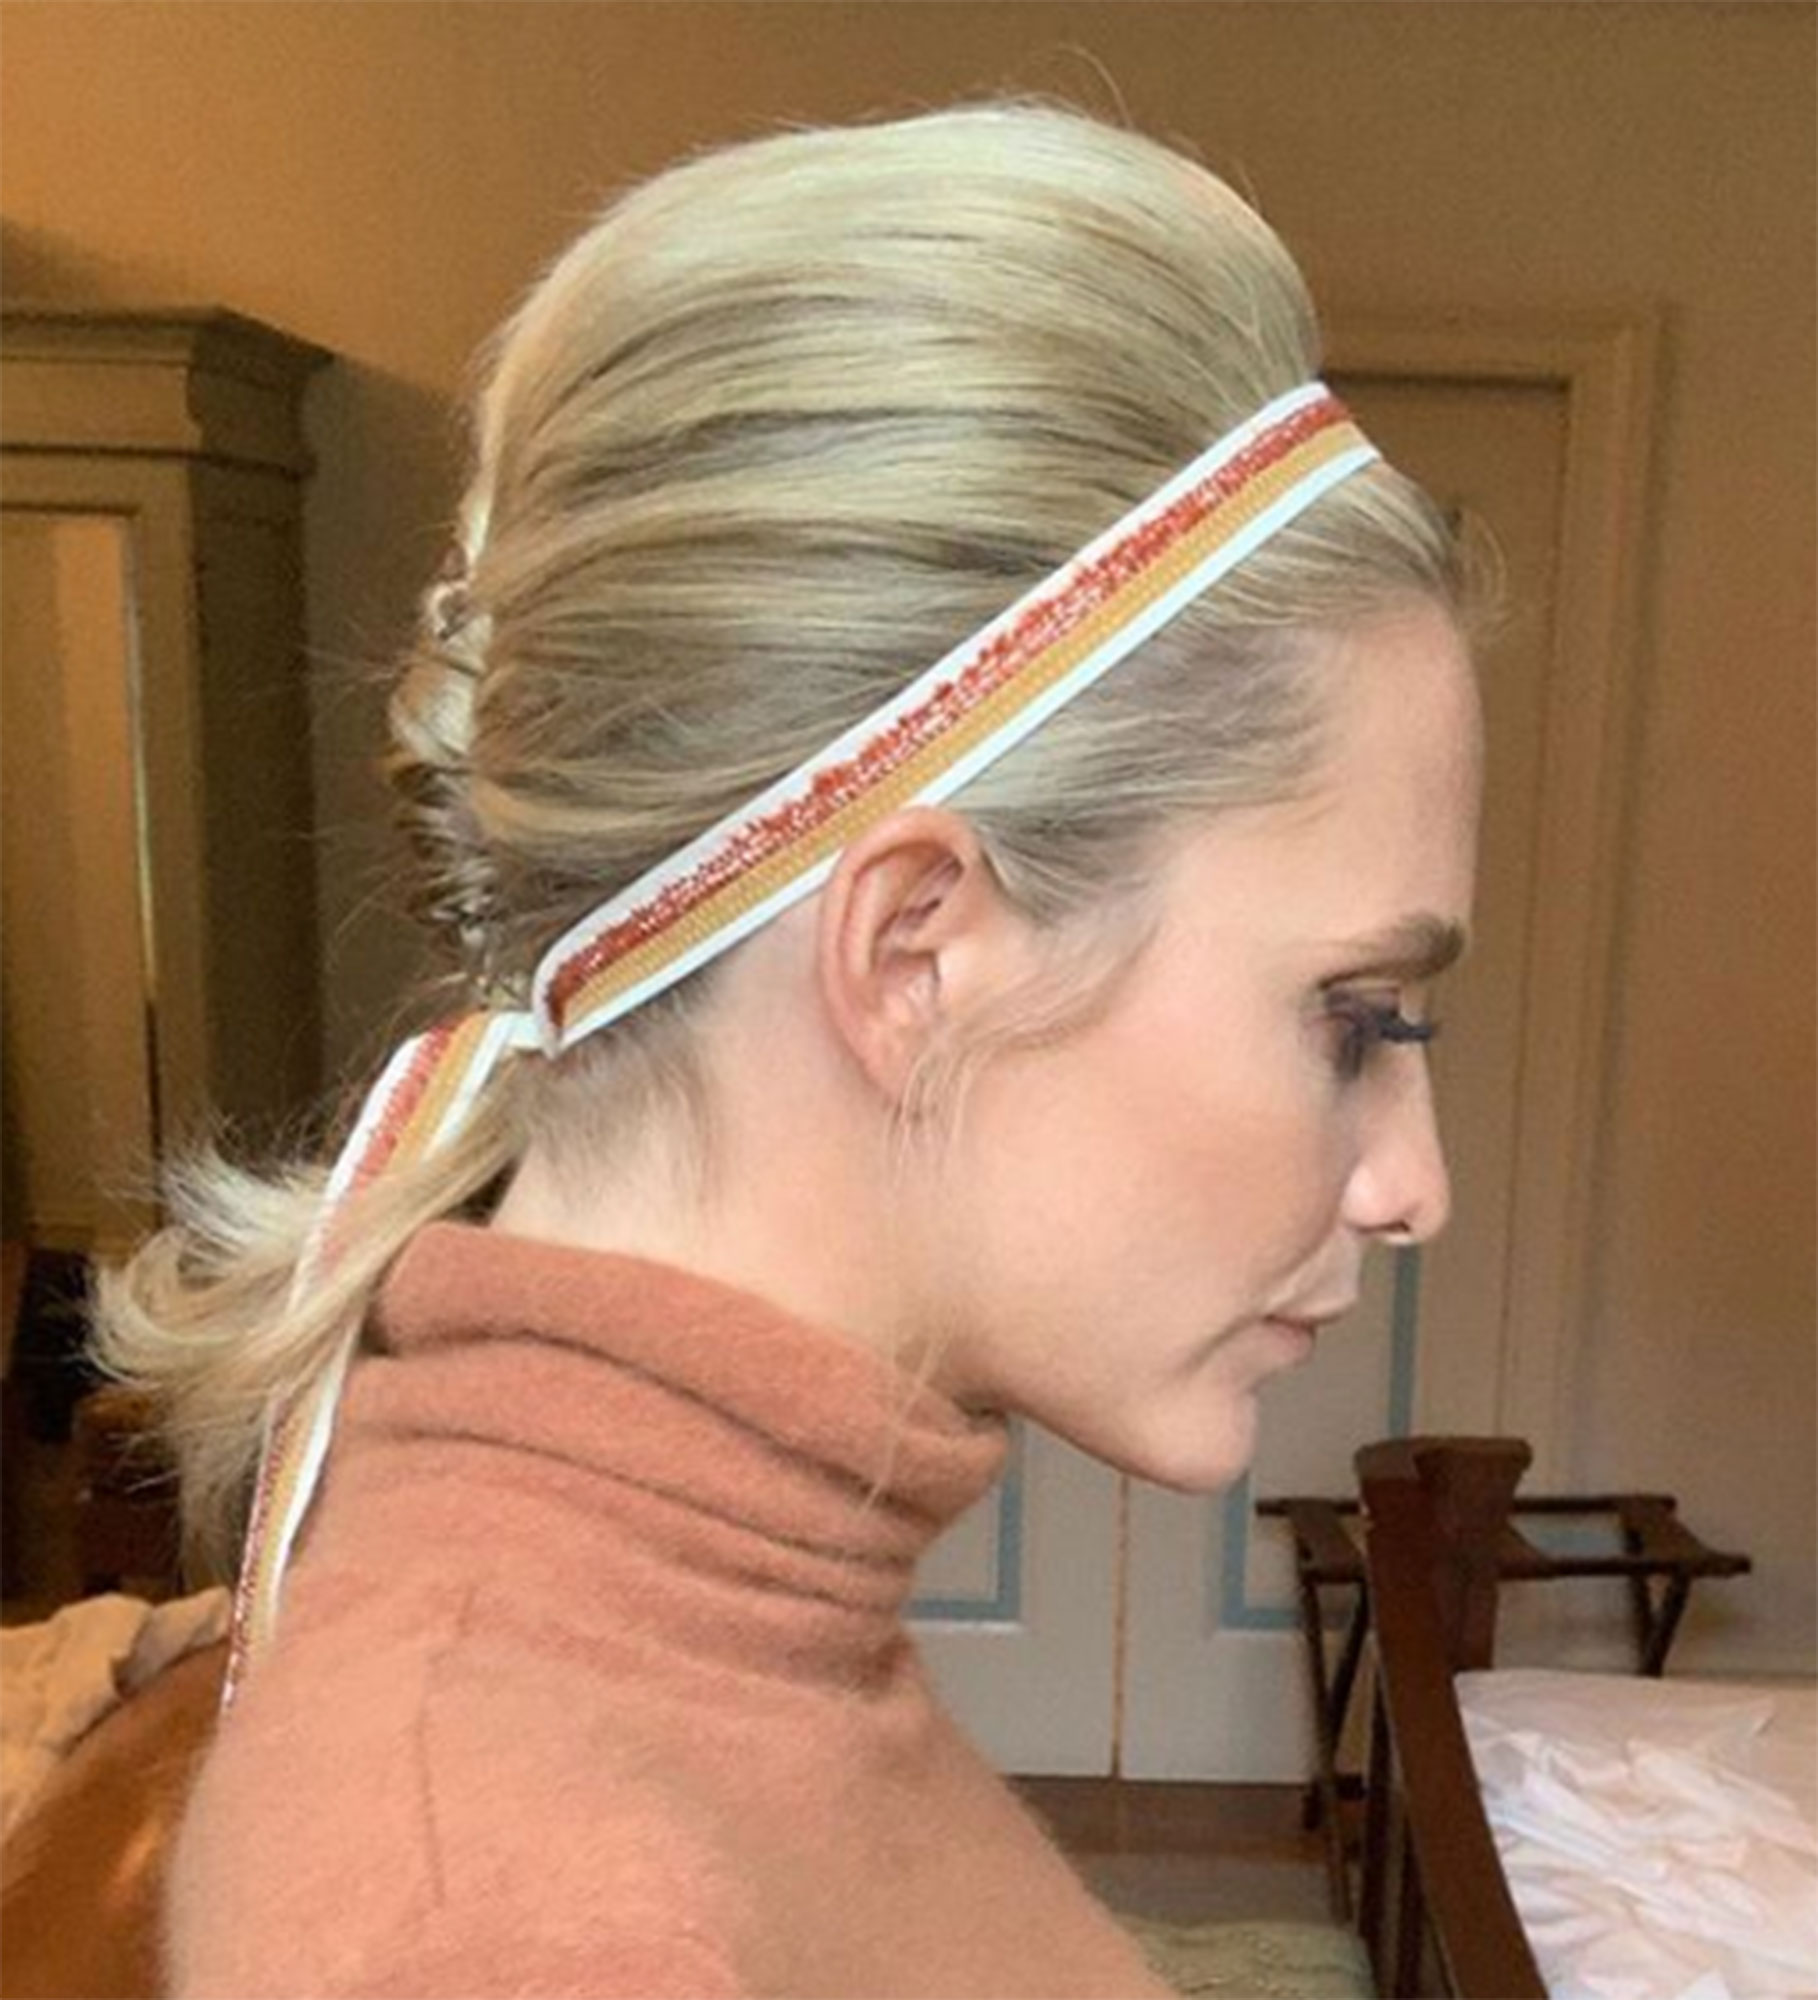 """Hailee Steinfeld¹s Hairstylist Spills 5 Coachella Tress Tips - As Poppy Delevingne proves, a hair accessory adds a playful touch to any look, and Polko believes """"anything is possible"""" when it comes to the extras. """"I love adding a few colorful hair ties or ribbons to a normal ponytail and turning it into a fun bubble pony,"""" she says."""